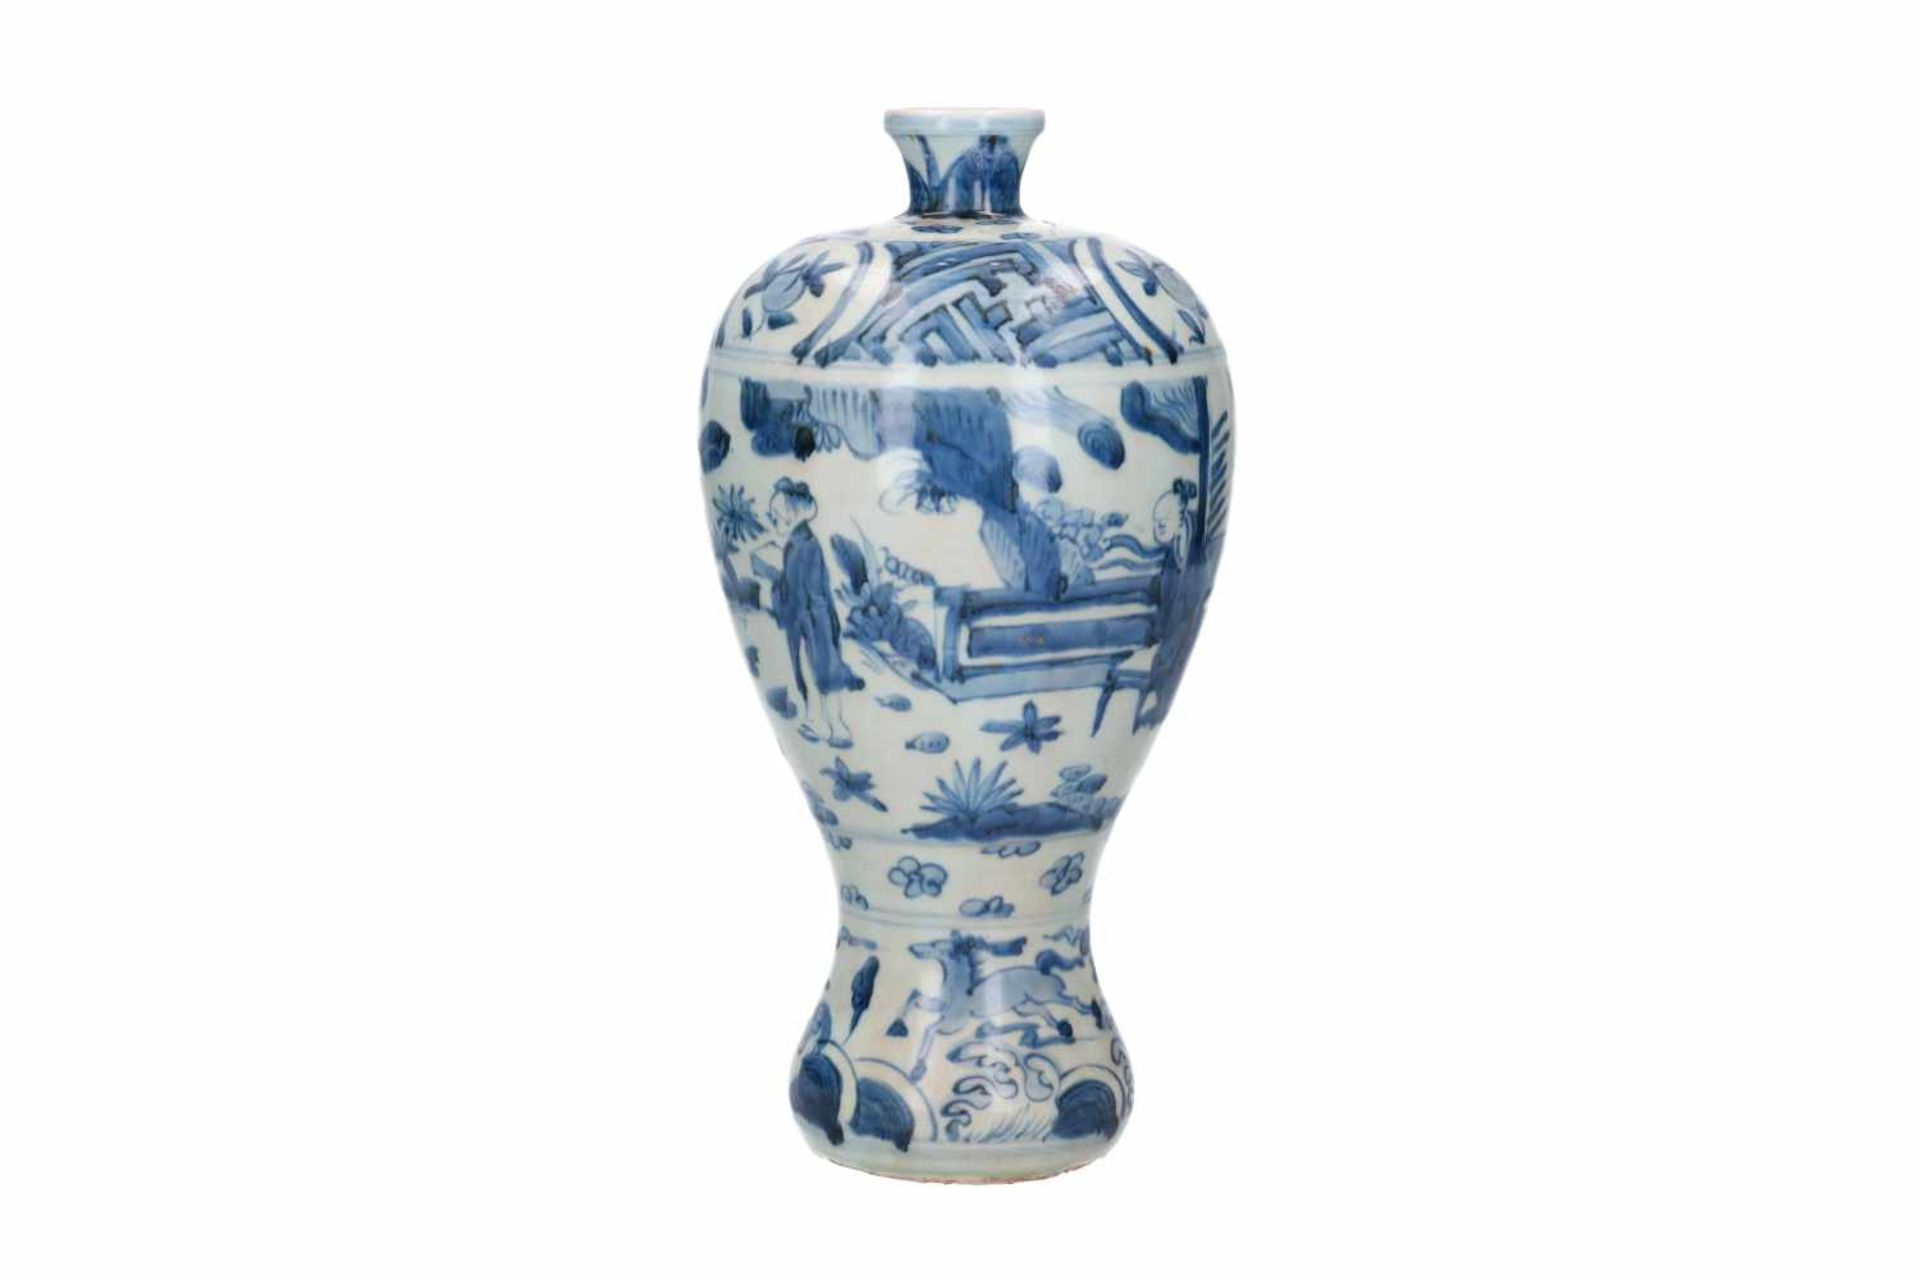 A blue and white porcelain Meiping vase, decorated with figures, horses and fruits. Unmarked. China, - Bild 2 aus 6